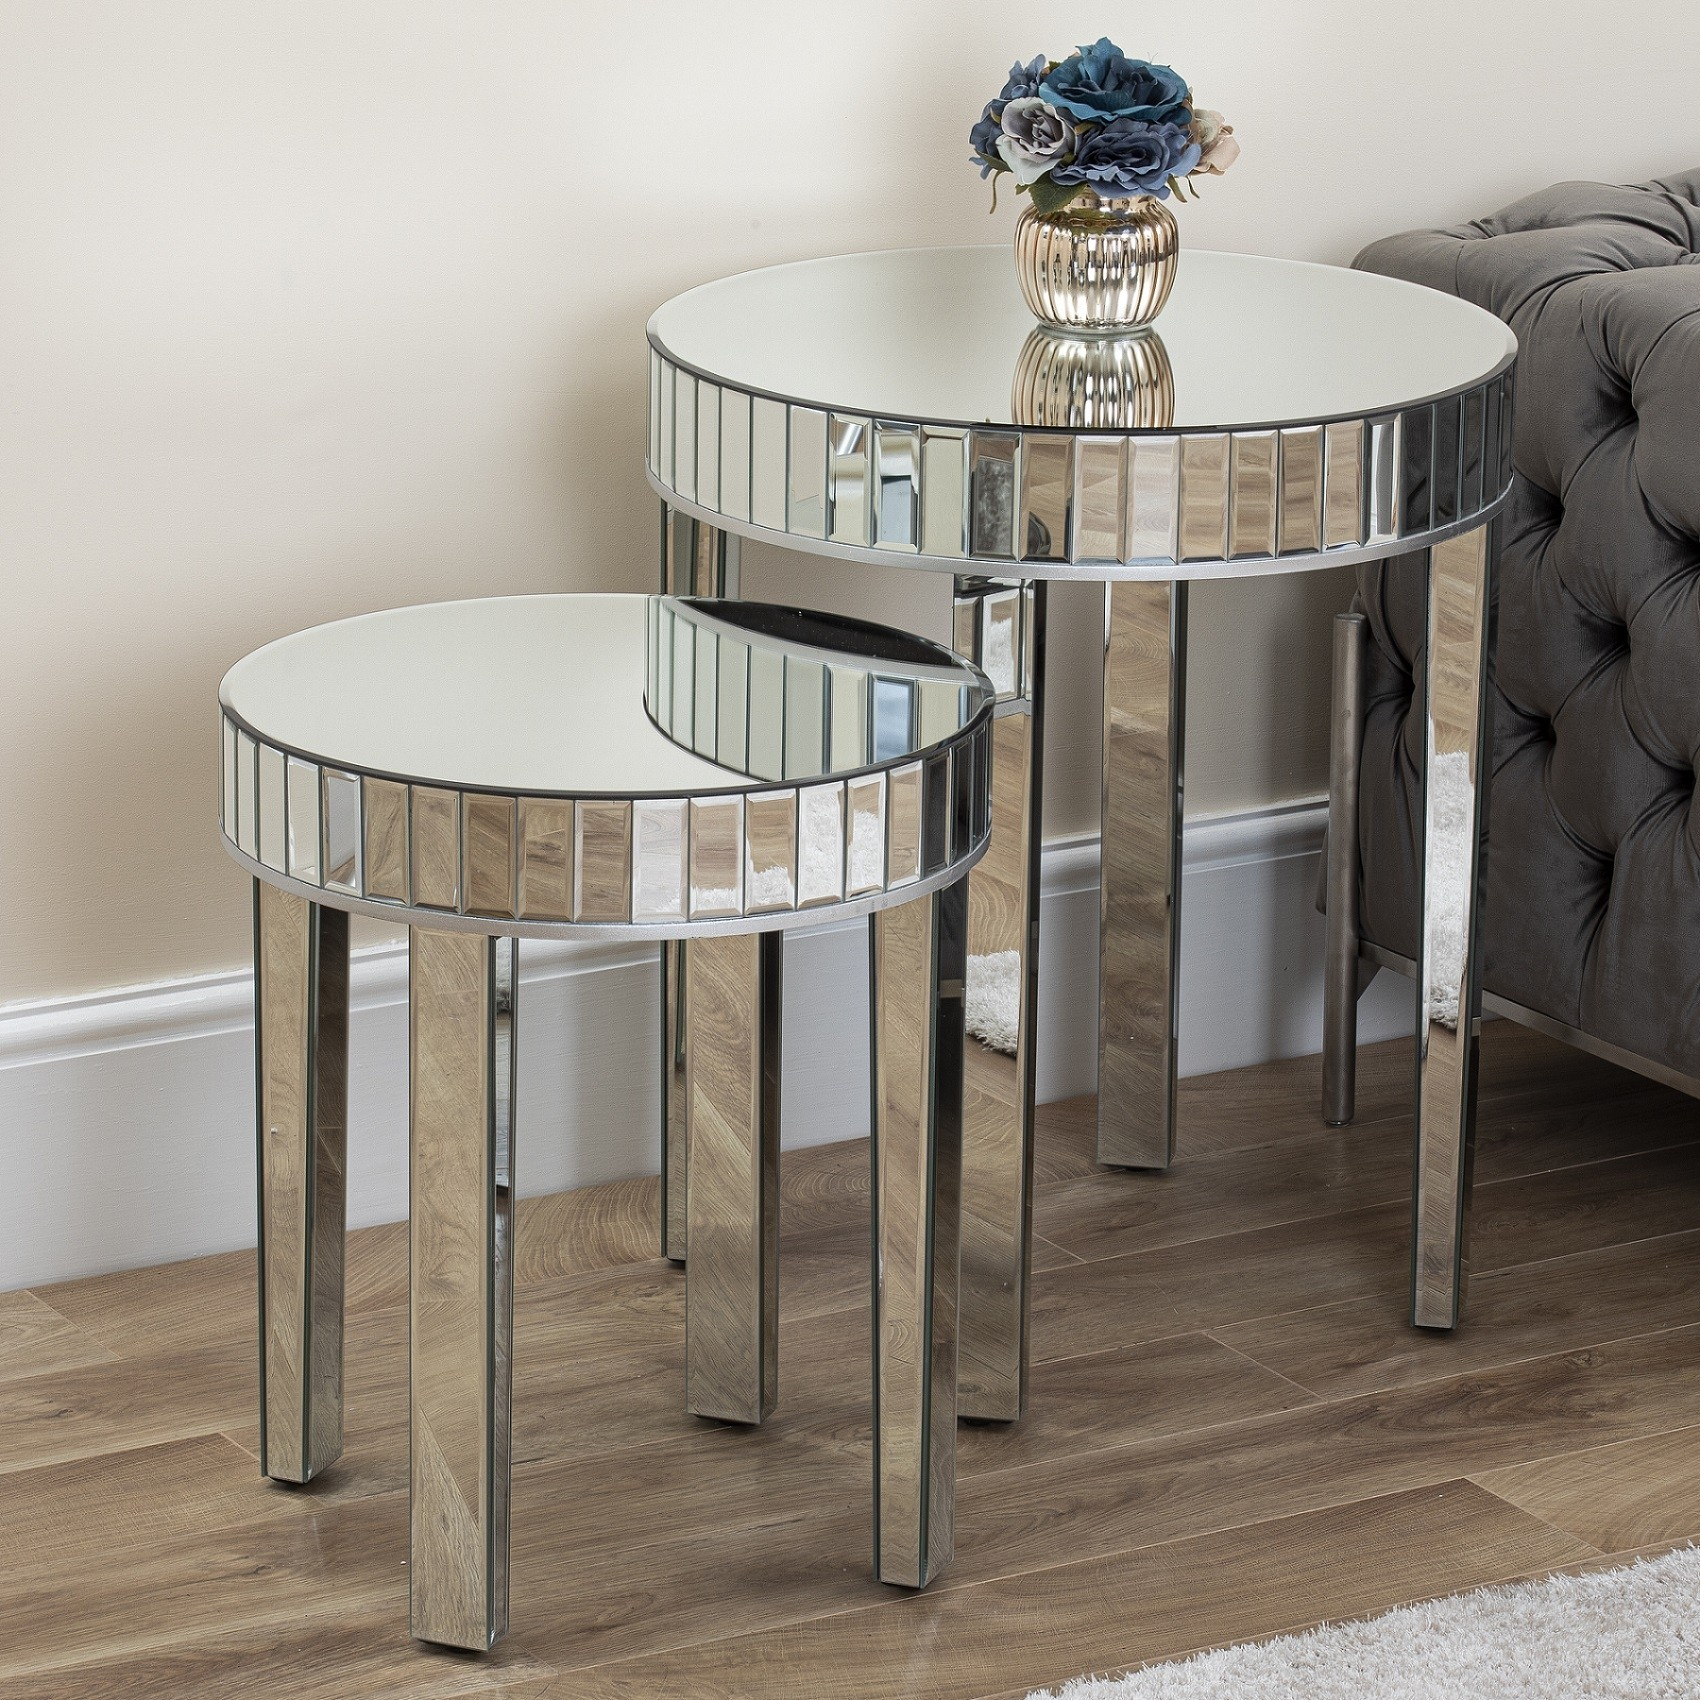 Large Mirrored Round Nest Of Tables Mirror Legs Side Table Living Room Hallway Ebay